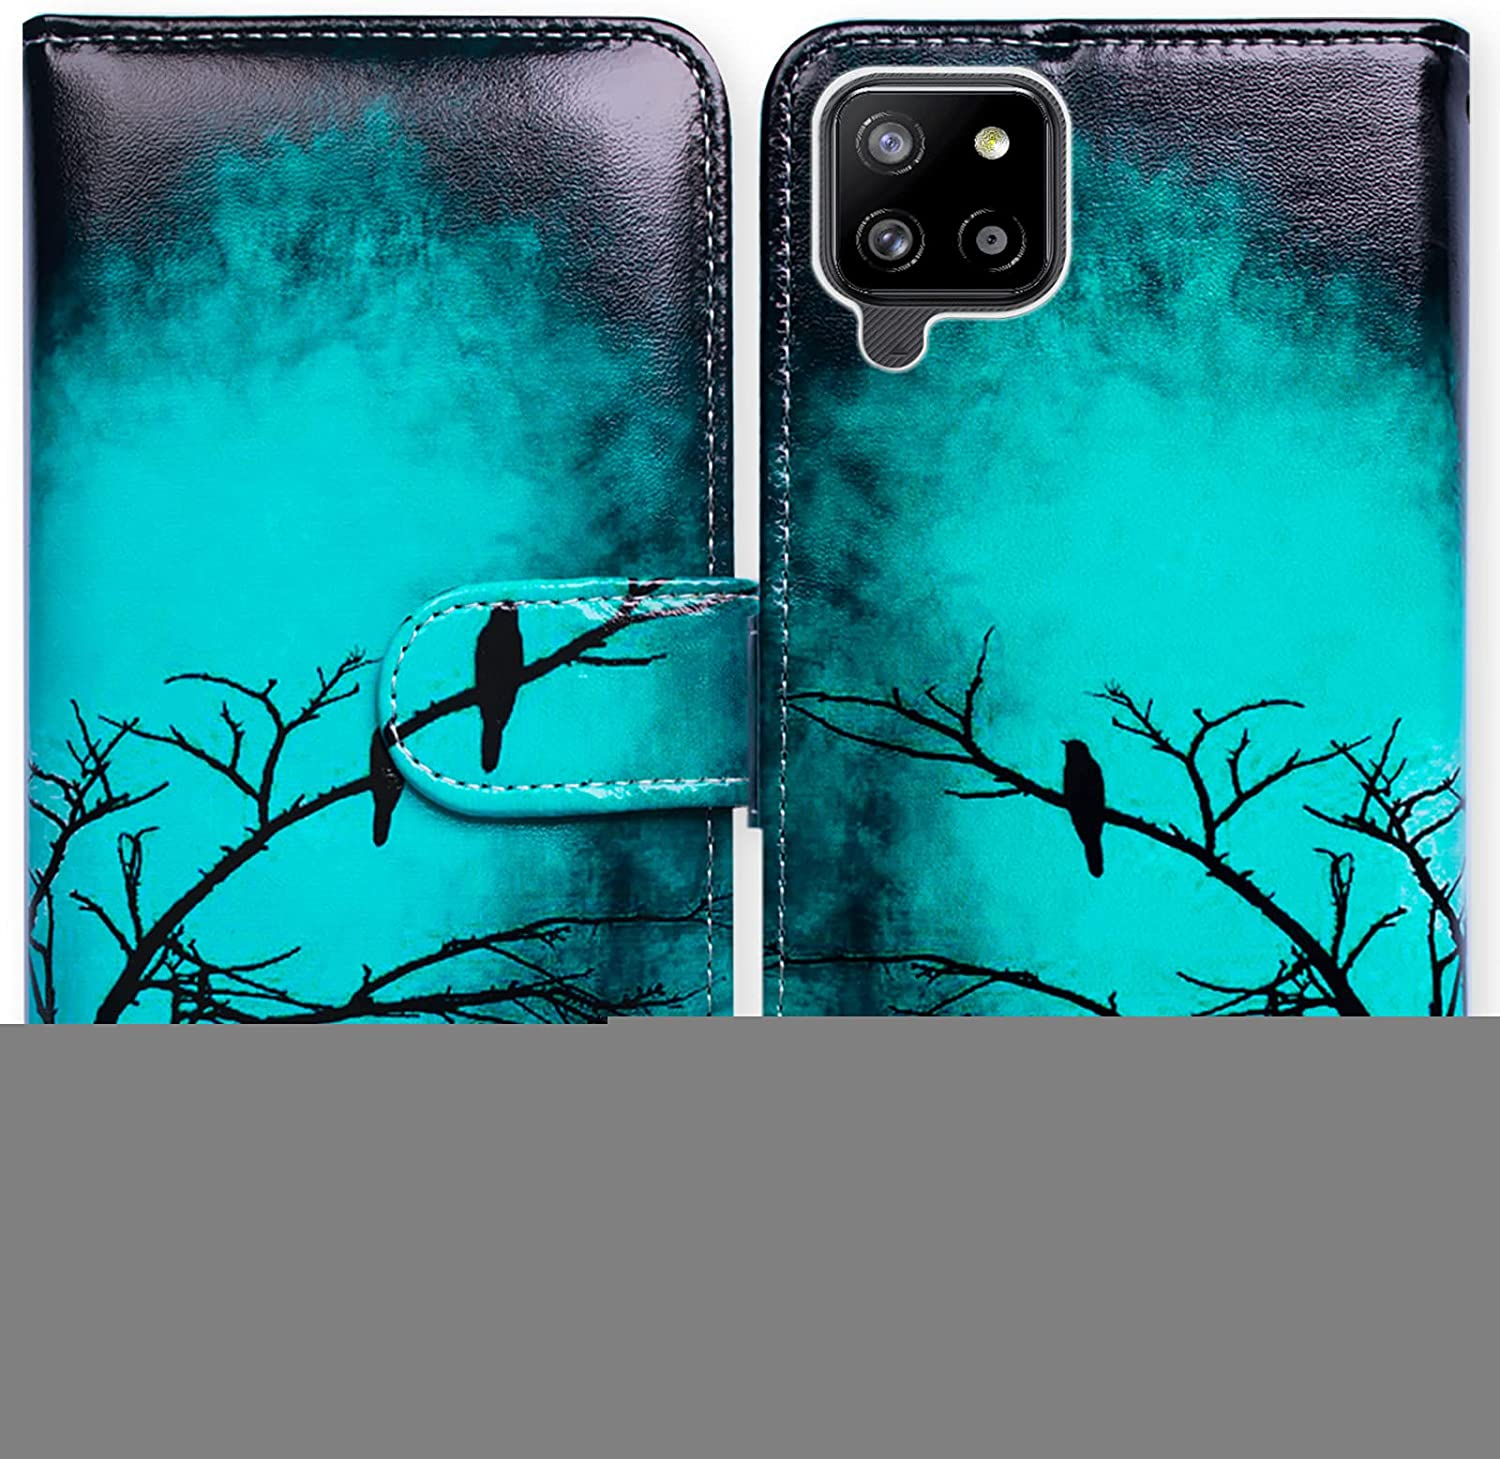 Galaxy A42 5G Case,Bcov Black Bird Green Leather Flip Phone Case Wallet Cover with Card Slot Holder Kickstand for Samsung Galaxy A42 5G 2021